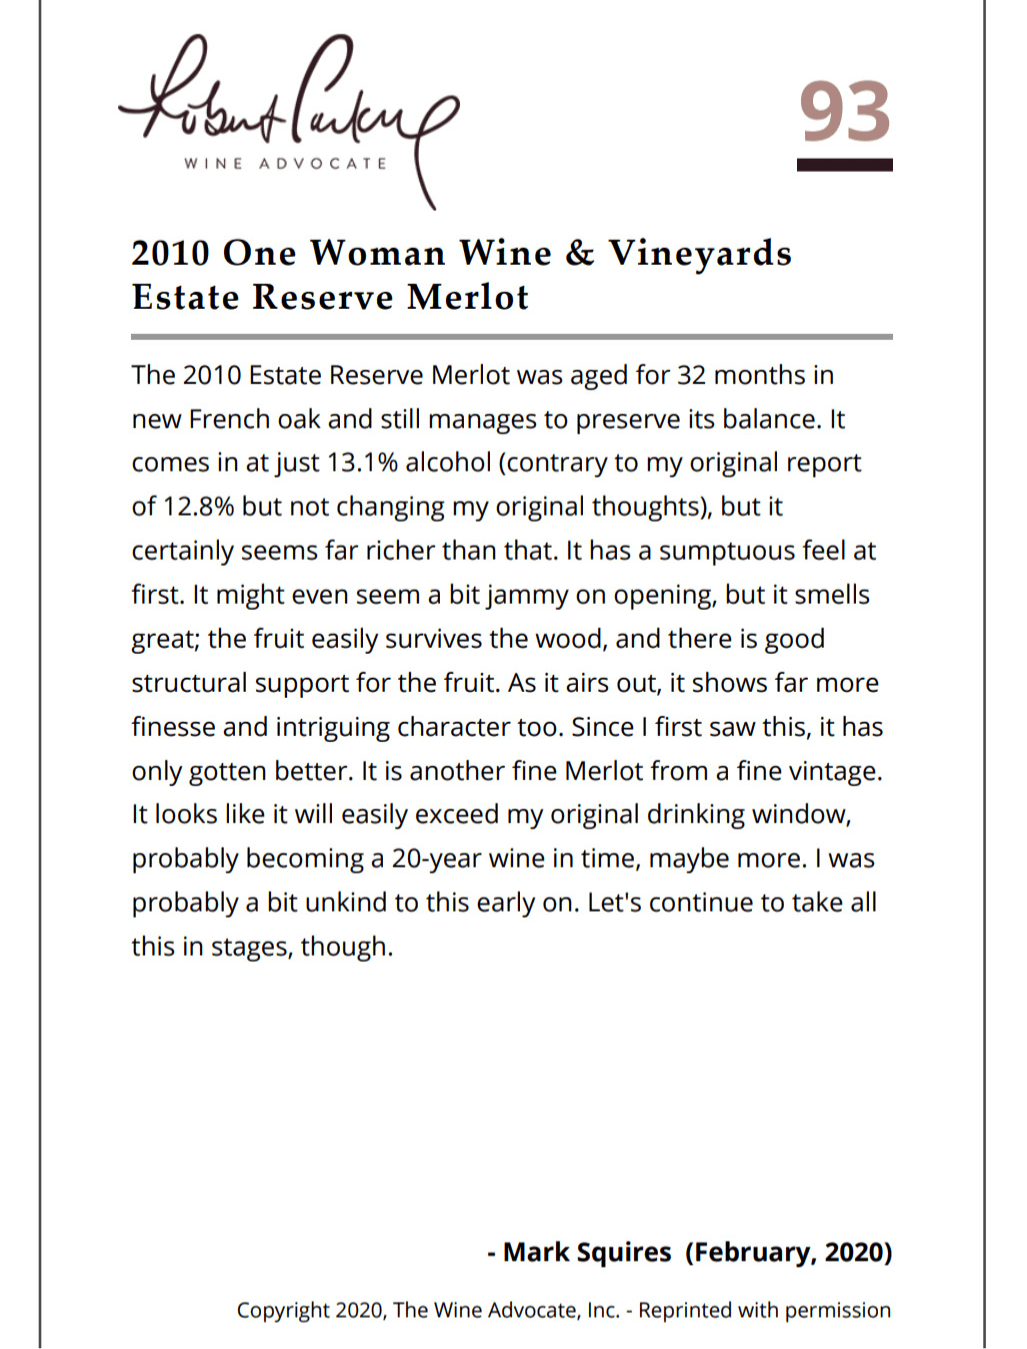 2010 One Woman Estate Reserve Merlot